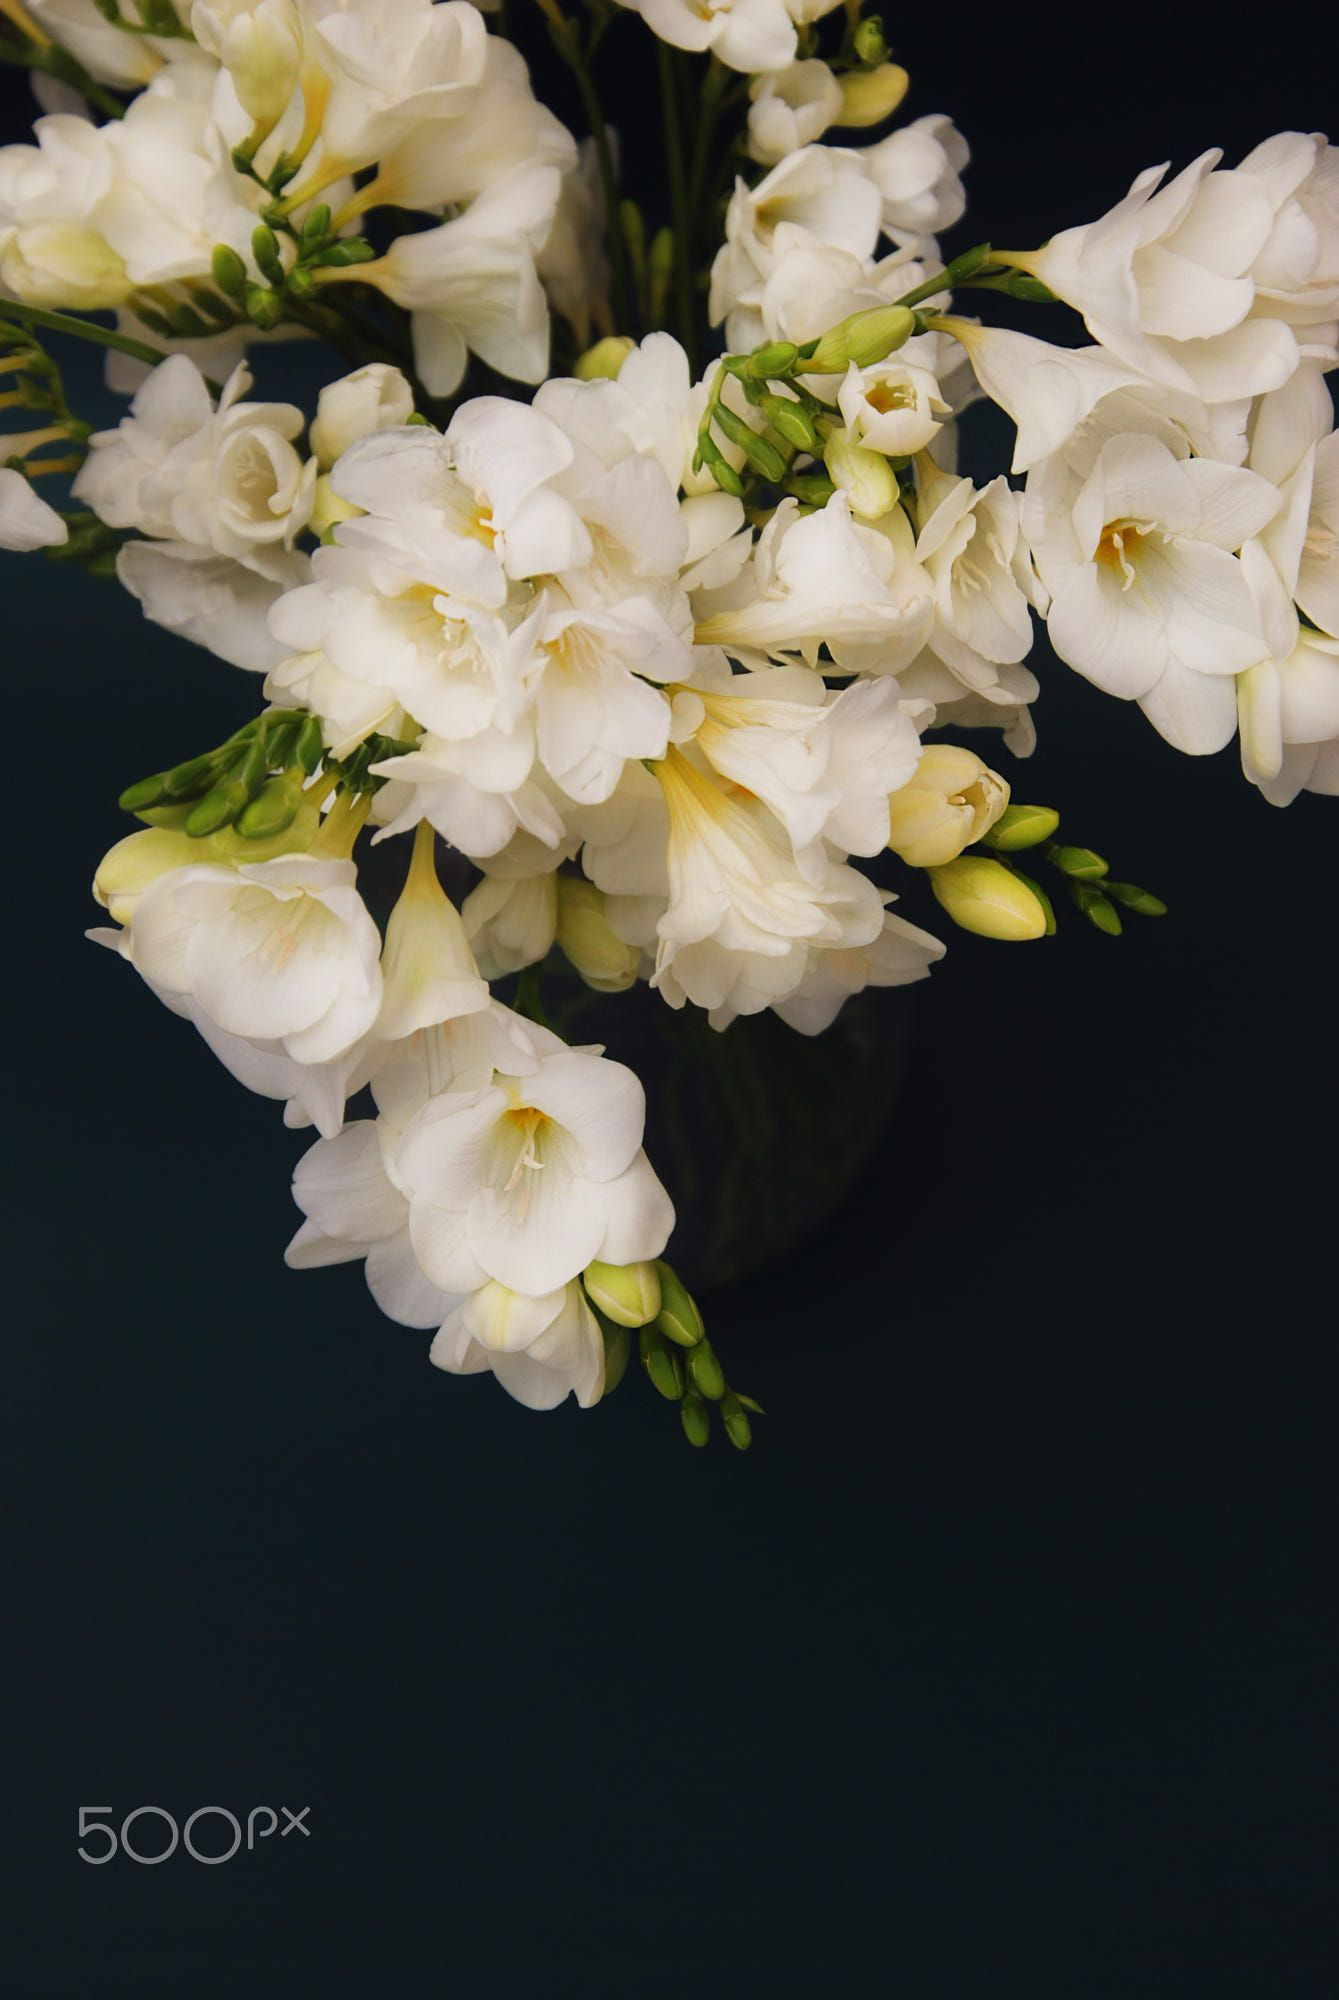 White freesia bouquet of flowers on black background flora and